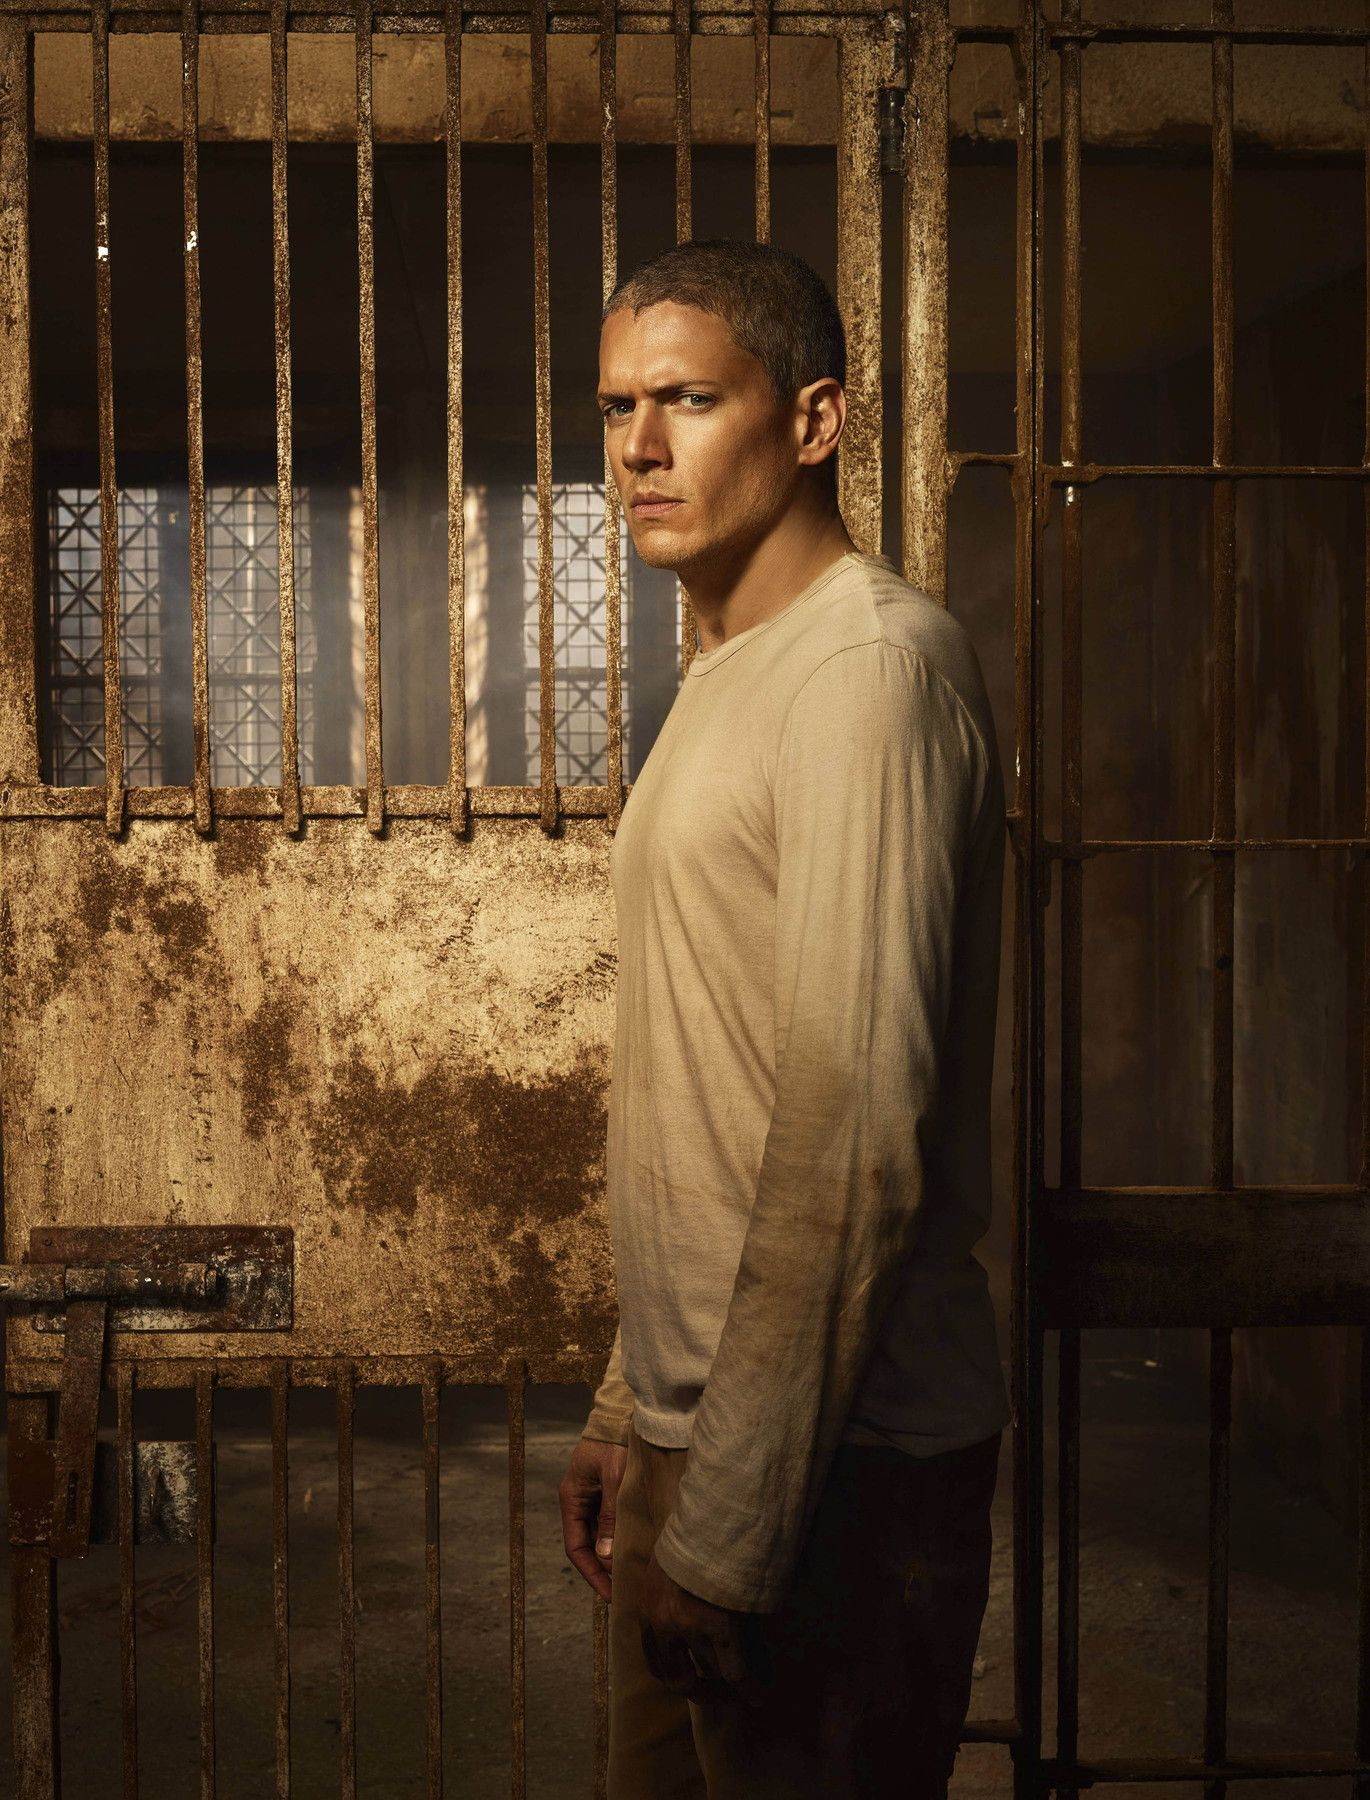 The Prison Break Revival Officially Has A Title As Show Writers Reveal Why There Are Only 9 Episodes In The New Series